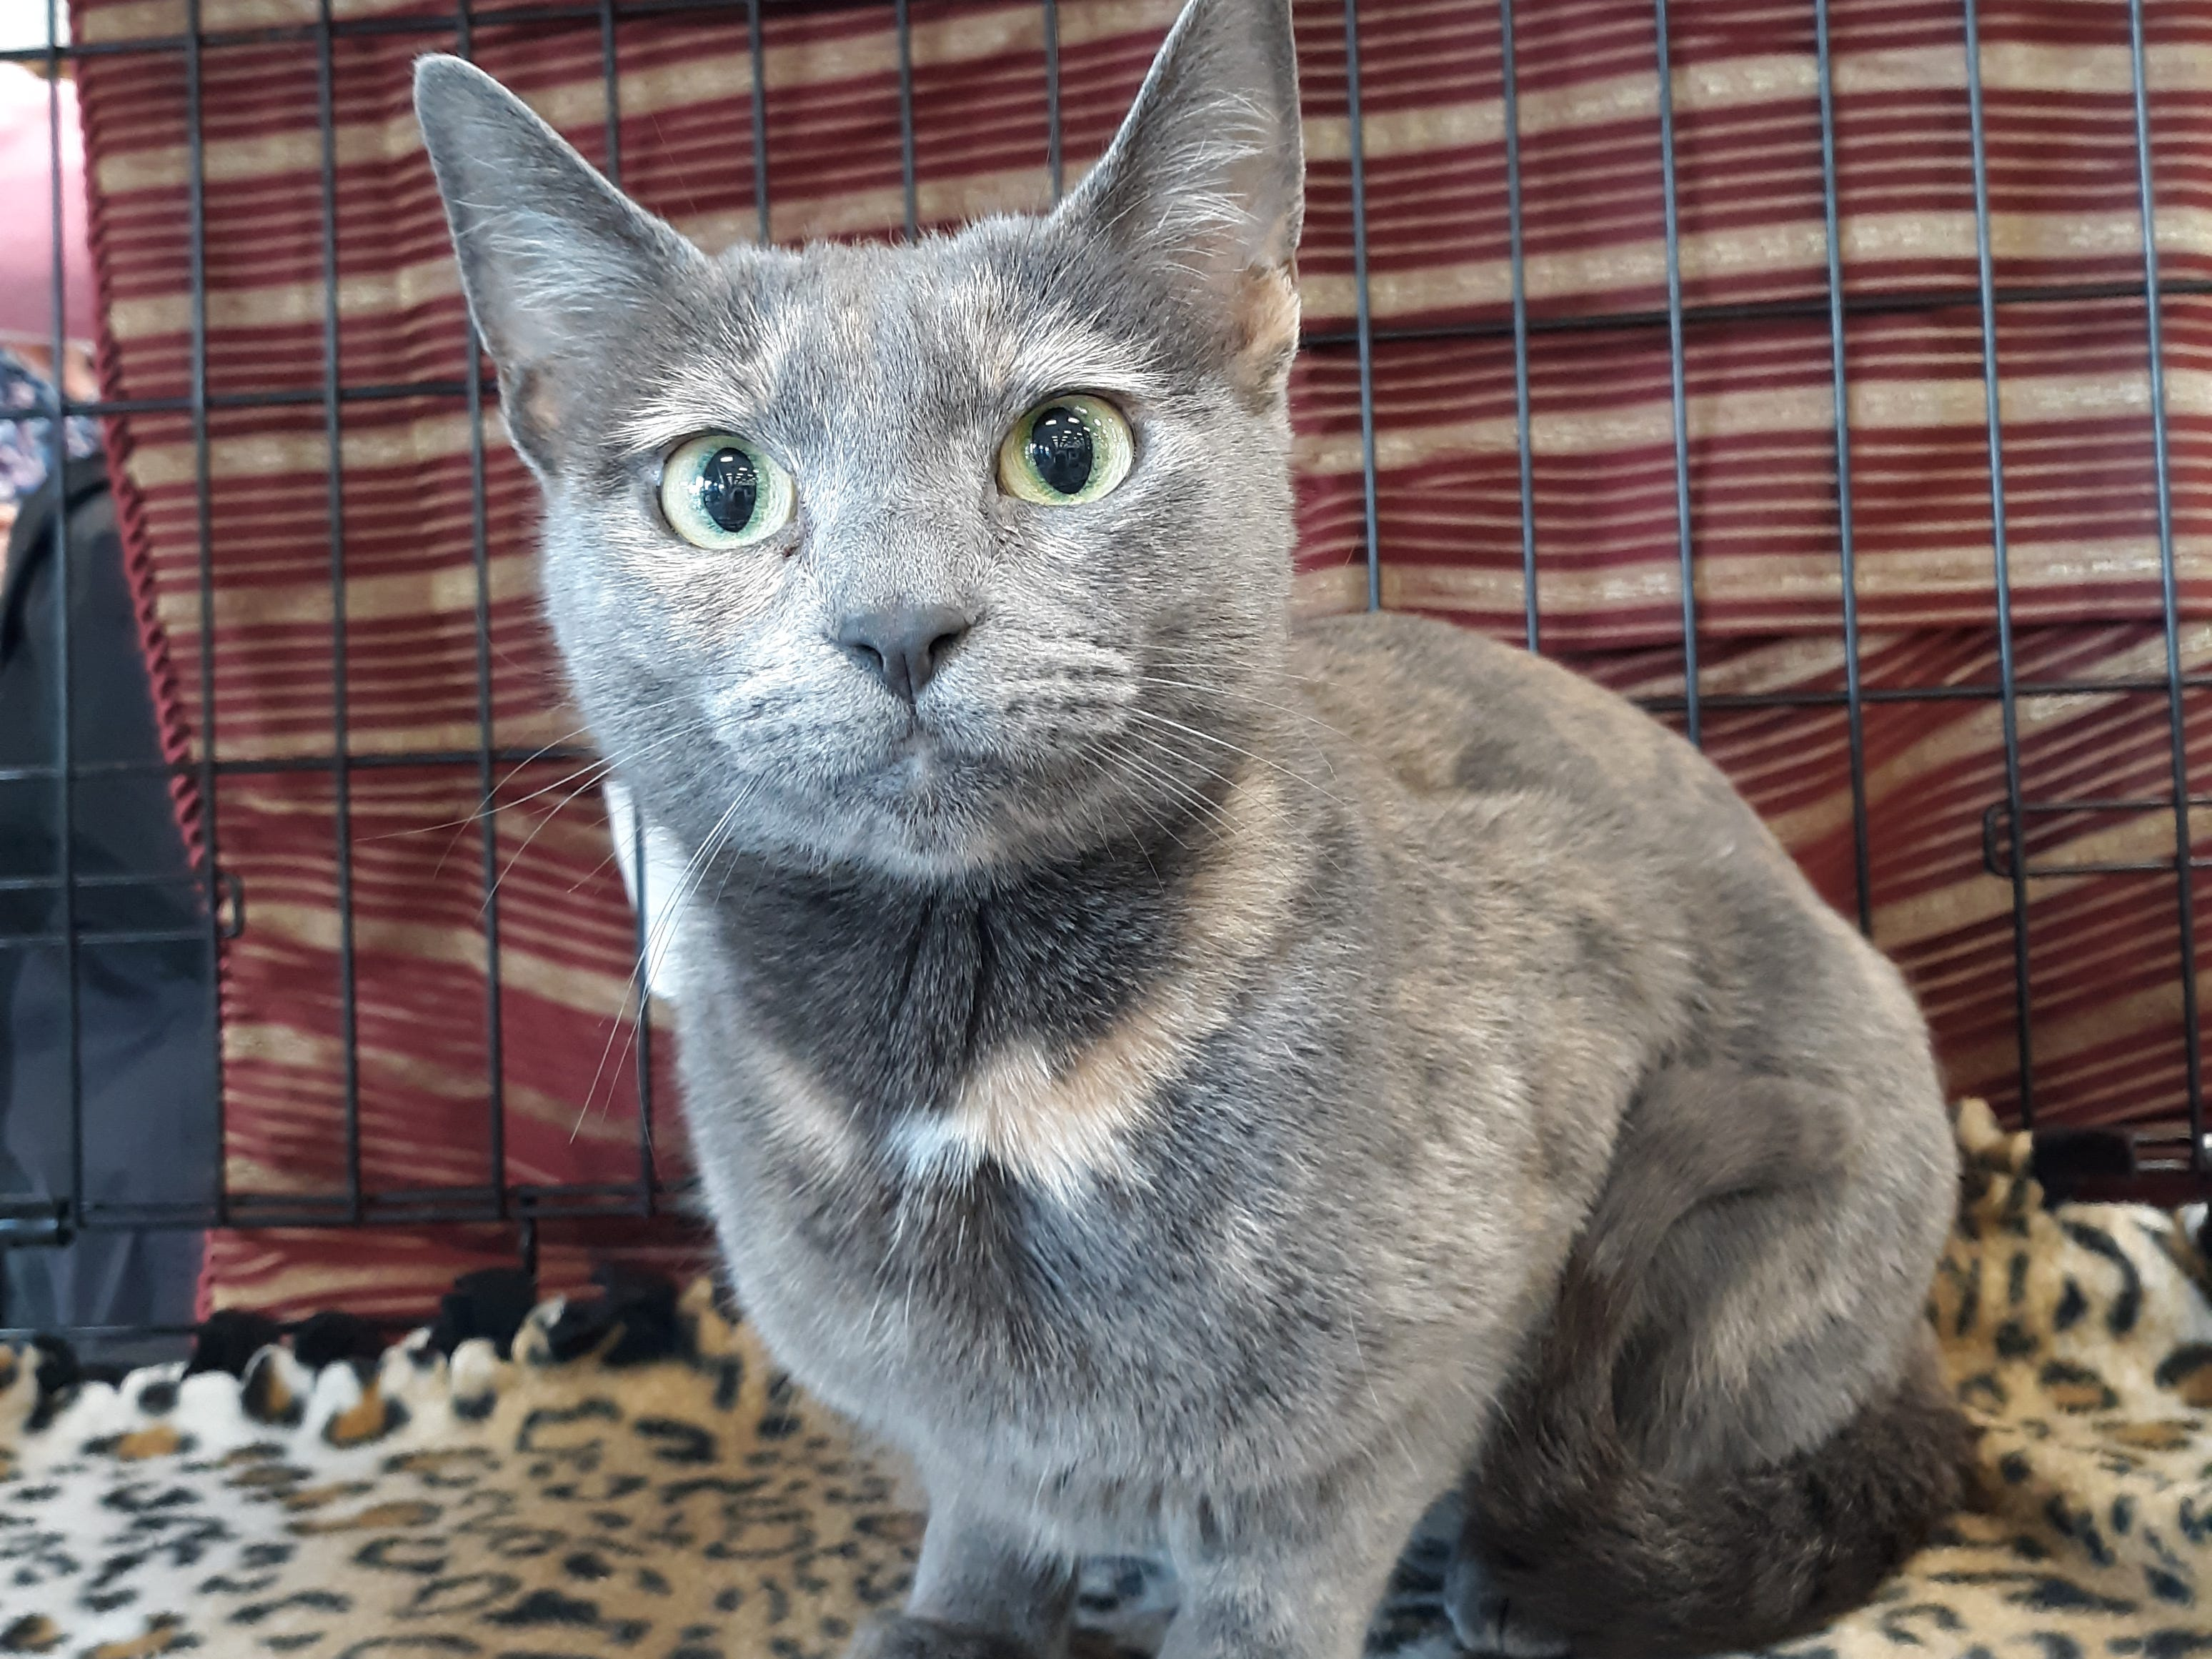 Octavia is a 1-year-old, female kitty who has beautiful diluted tortoiseshell markings. She's spayed, vetted and current on vaccines. All animal adoptions include spaying or neutering and vaccinations. Apply with Another Chance Animal Welfare League at www.acawl.org. Call 356-0698.